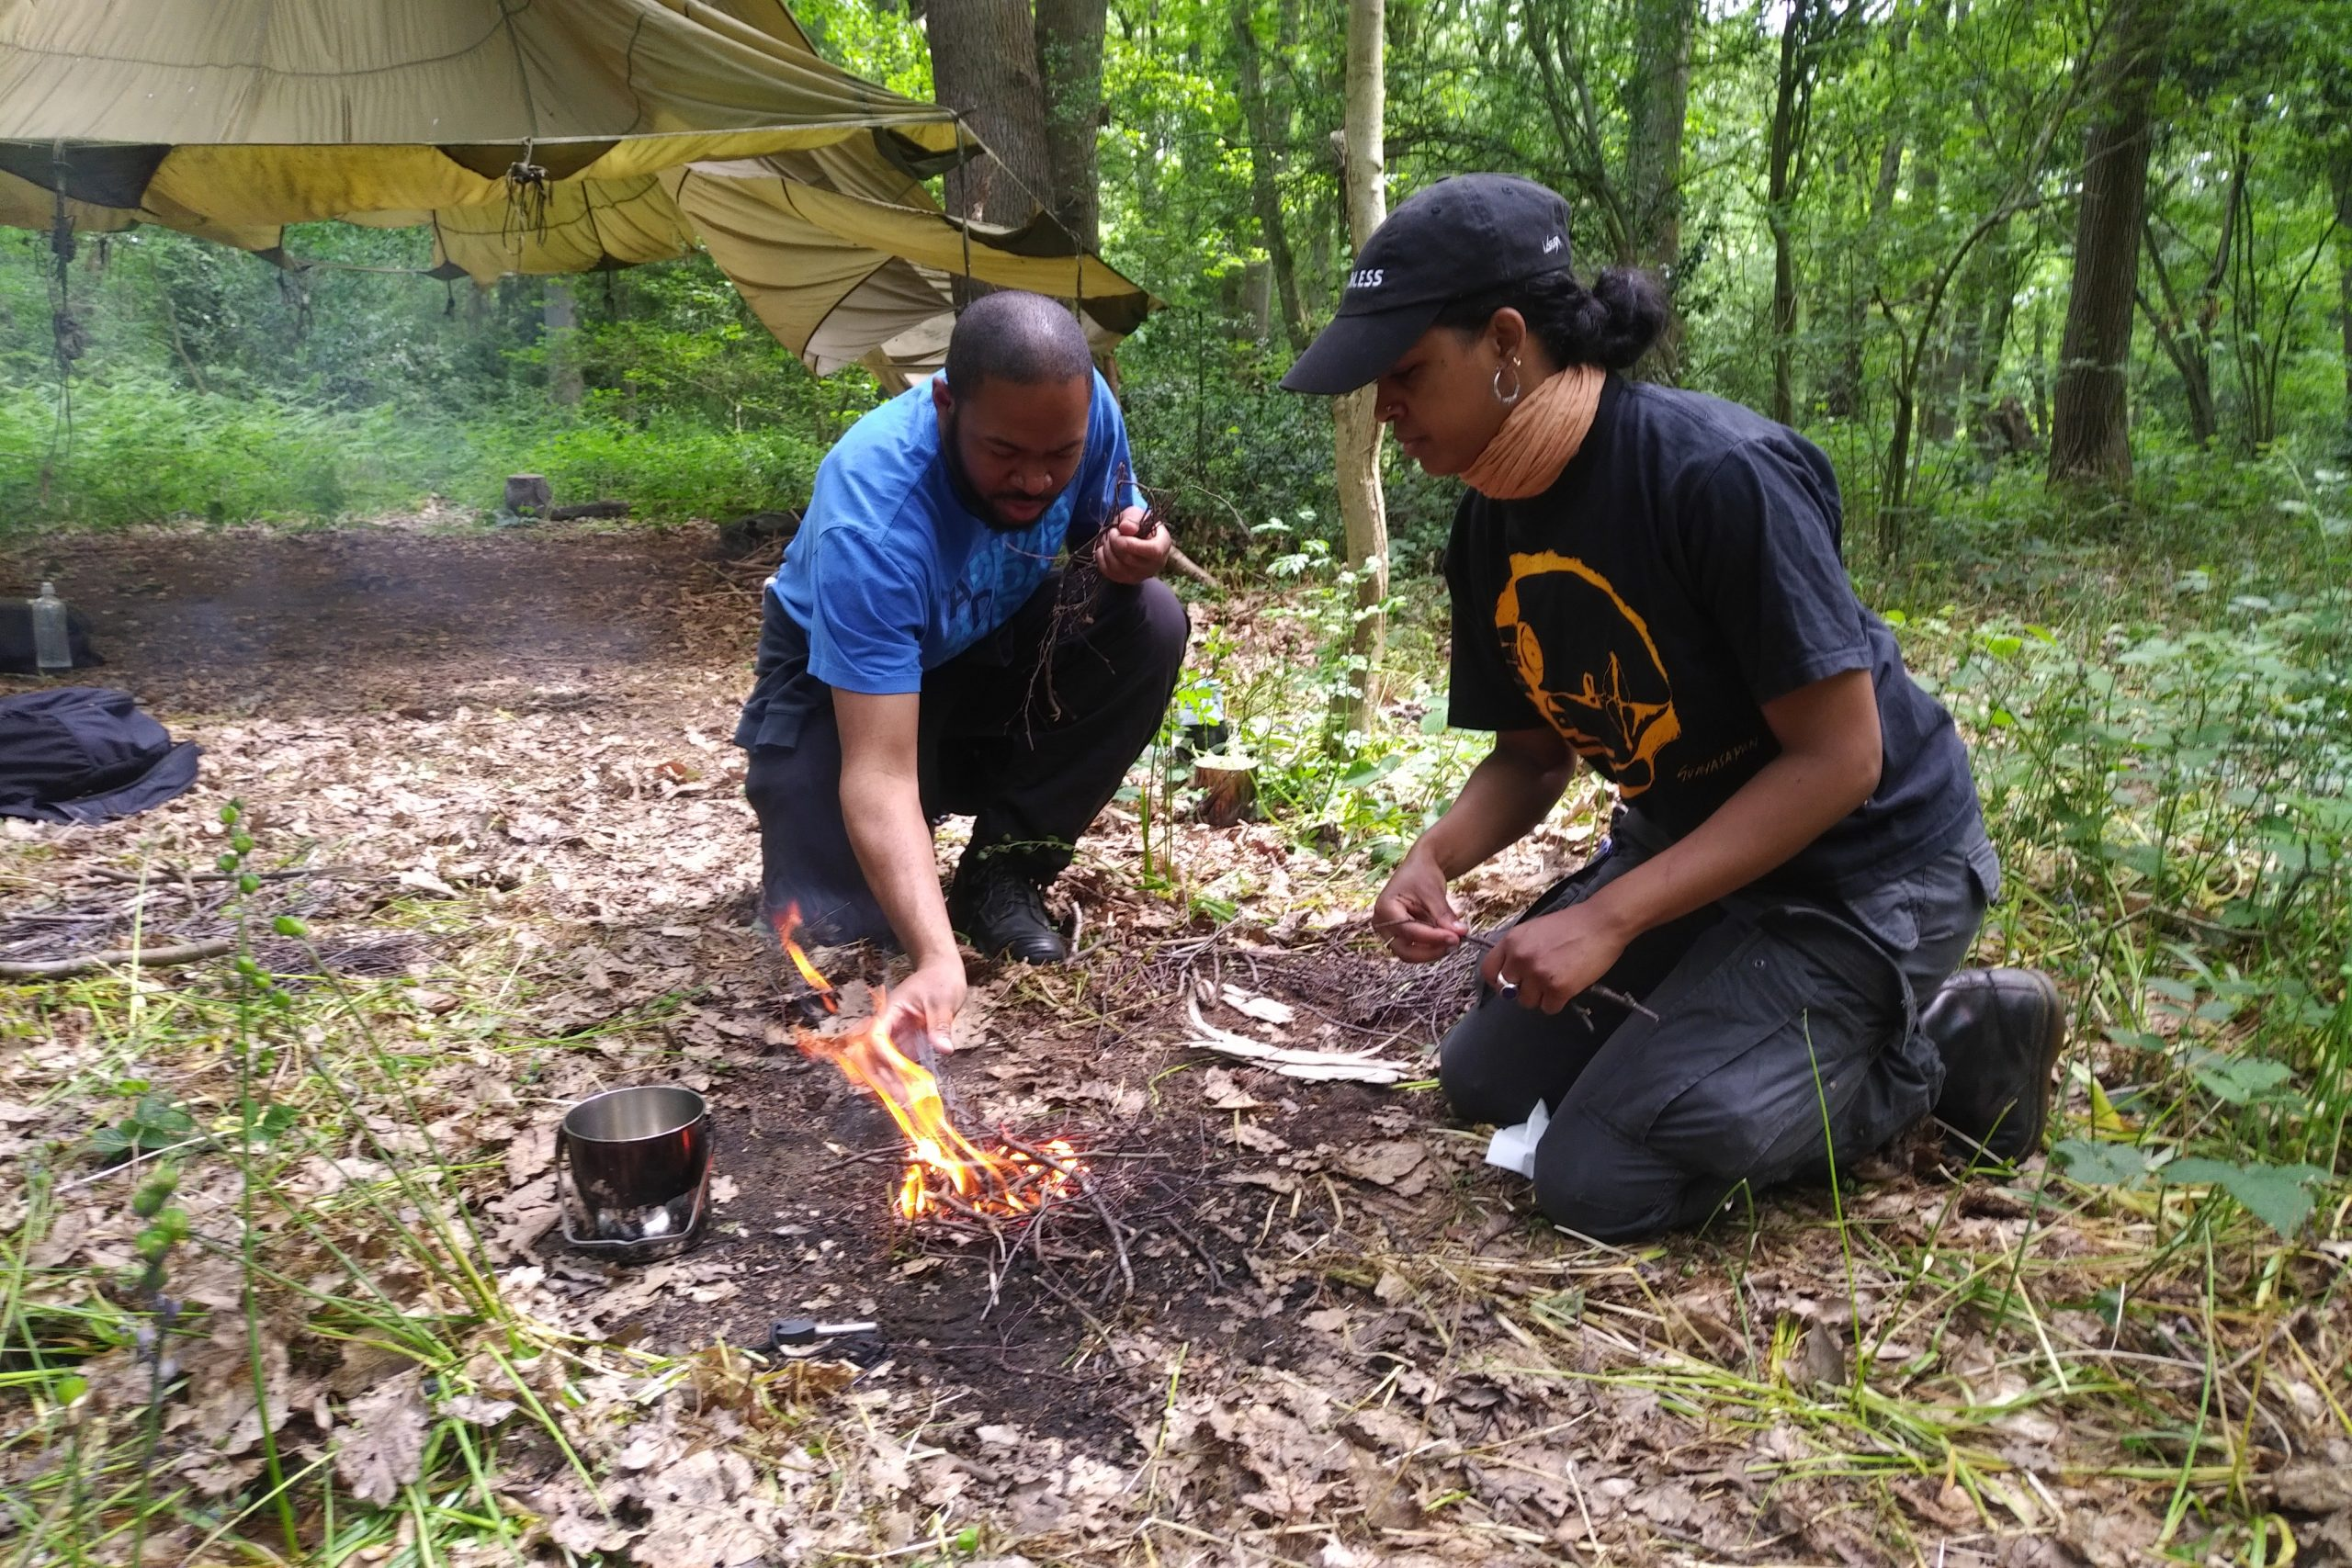 Two people building a camp fire in front of a tent in the woods. The man is wearing a blue t-shirt and dark waterproof trousers. The woman is wearing a black hat and t-shirt and waterproof trousers. They are kneeling on the ground.